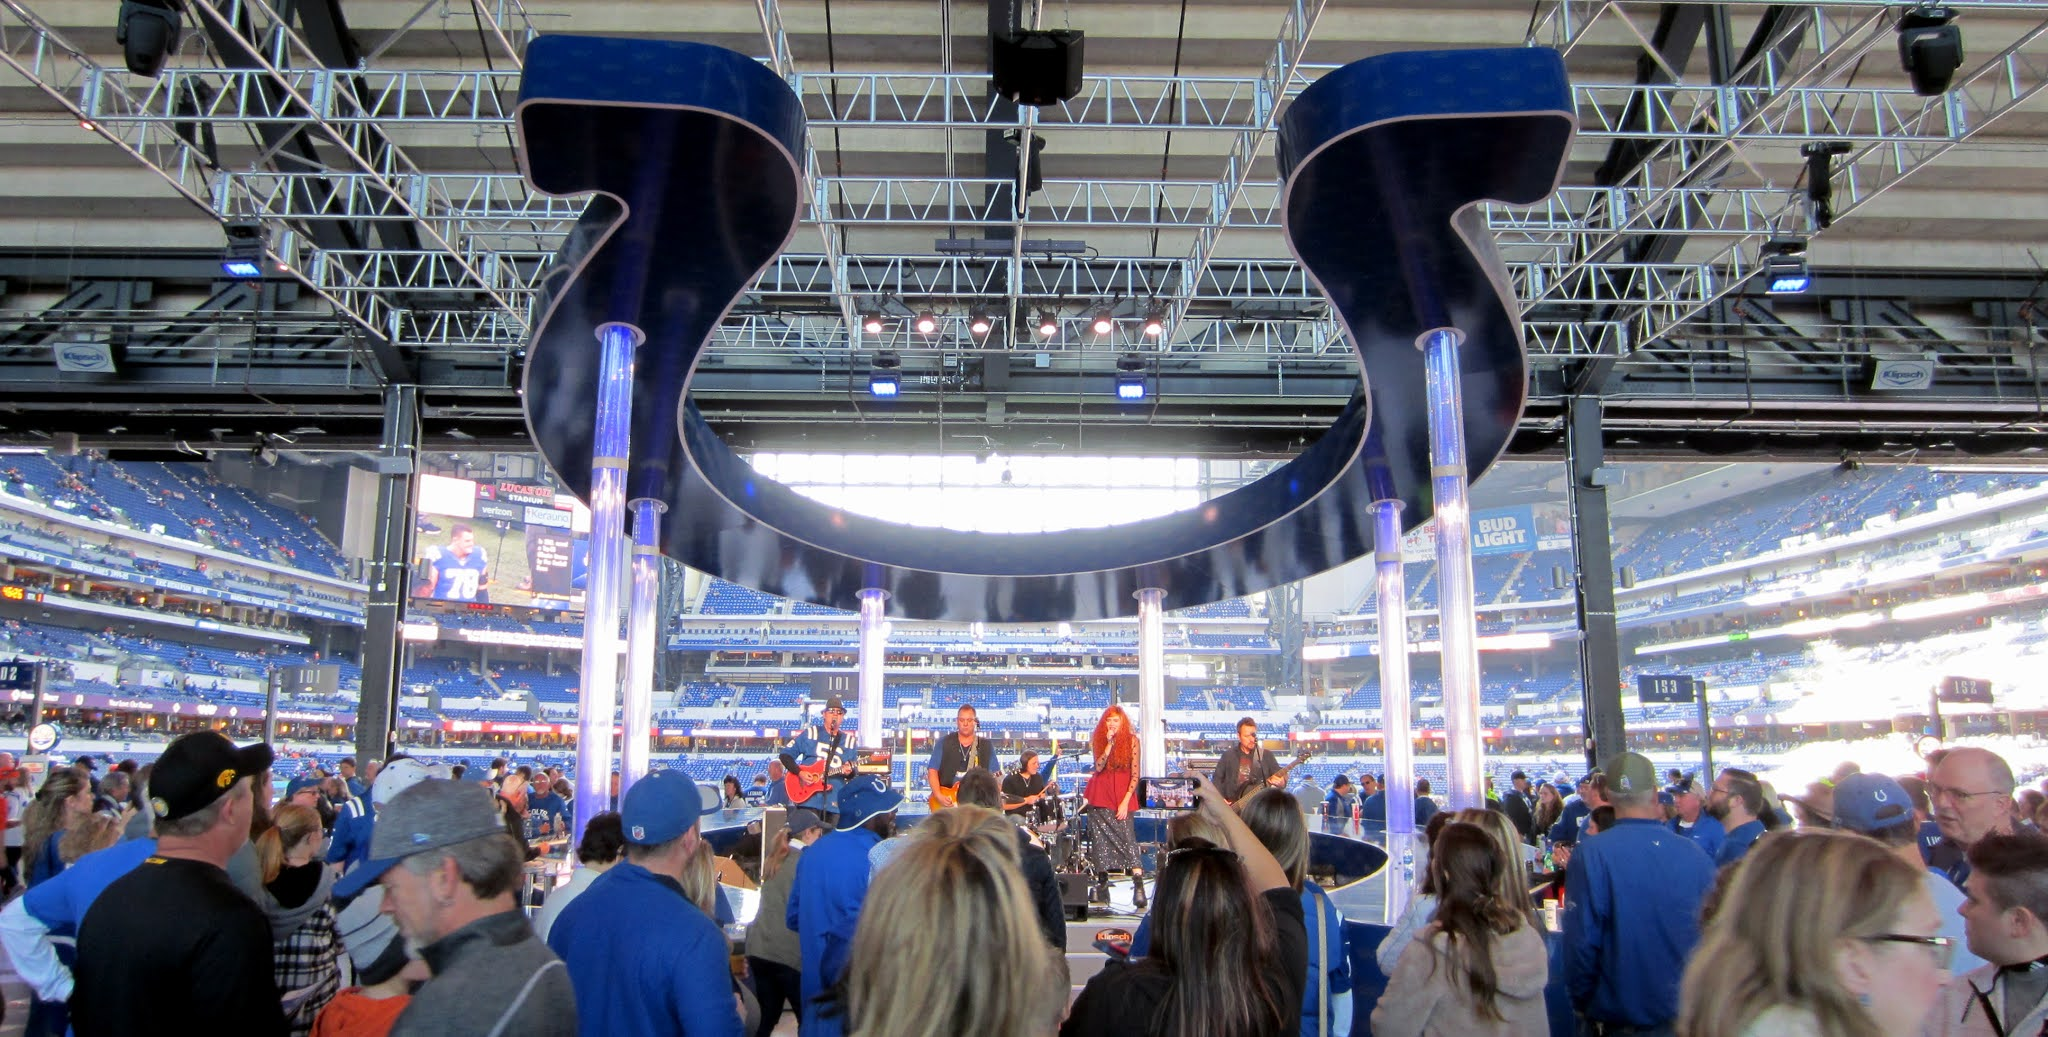 A band playing on the stage inside Lucas Oil Stadium